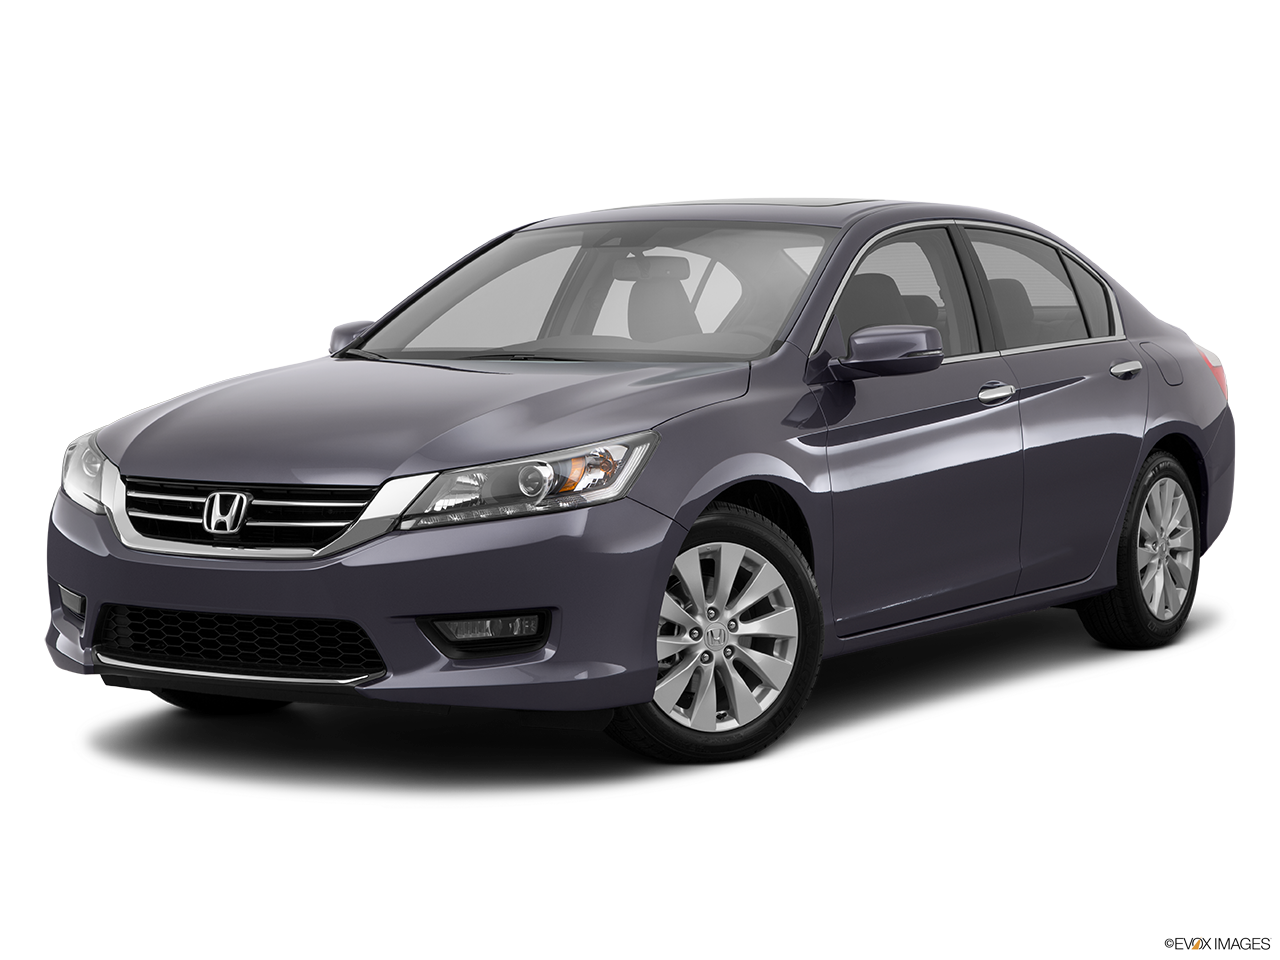 2015 Honda Accord #8